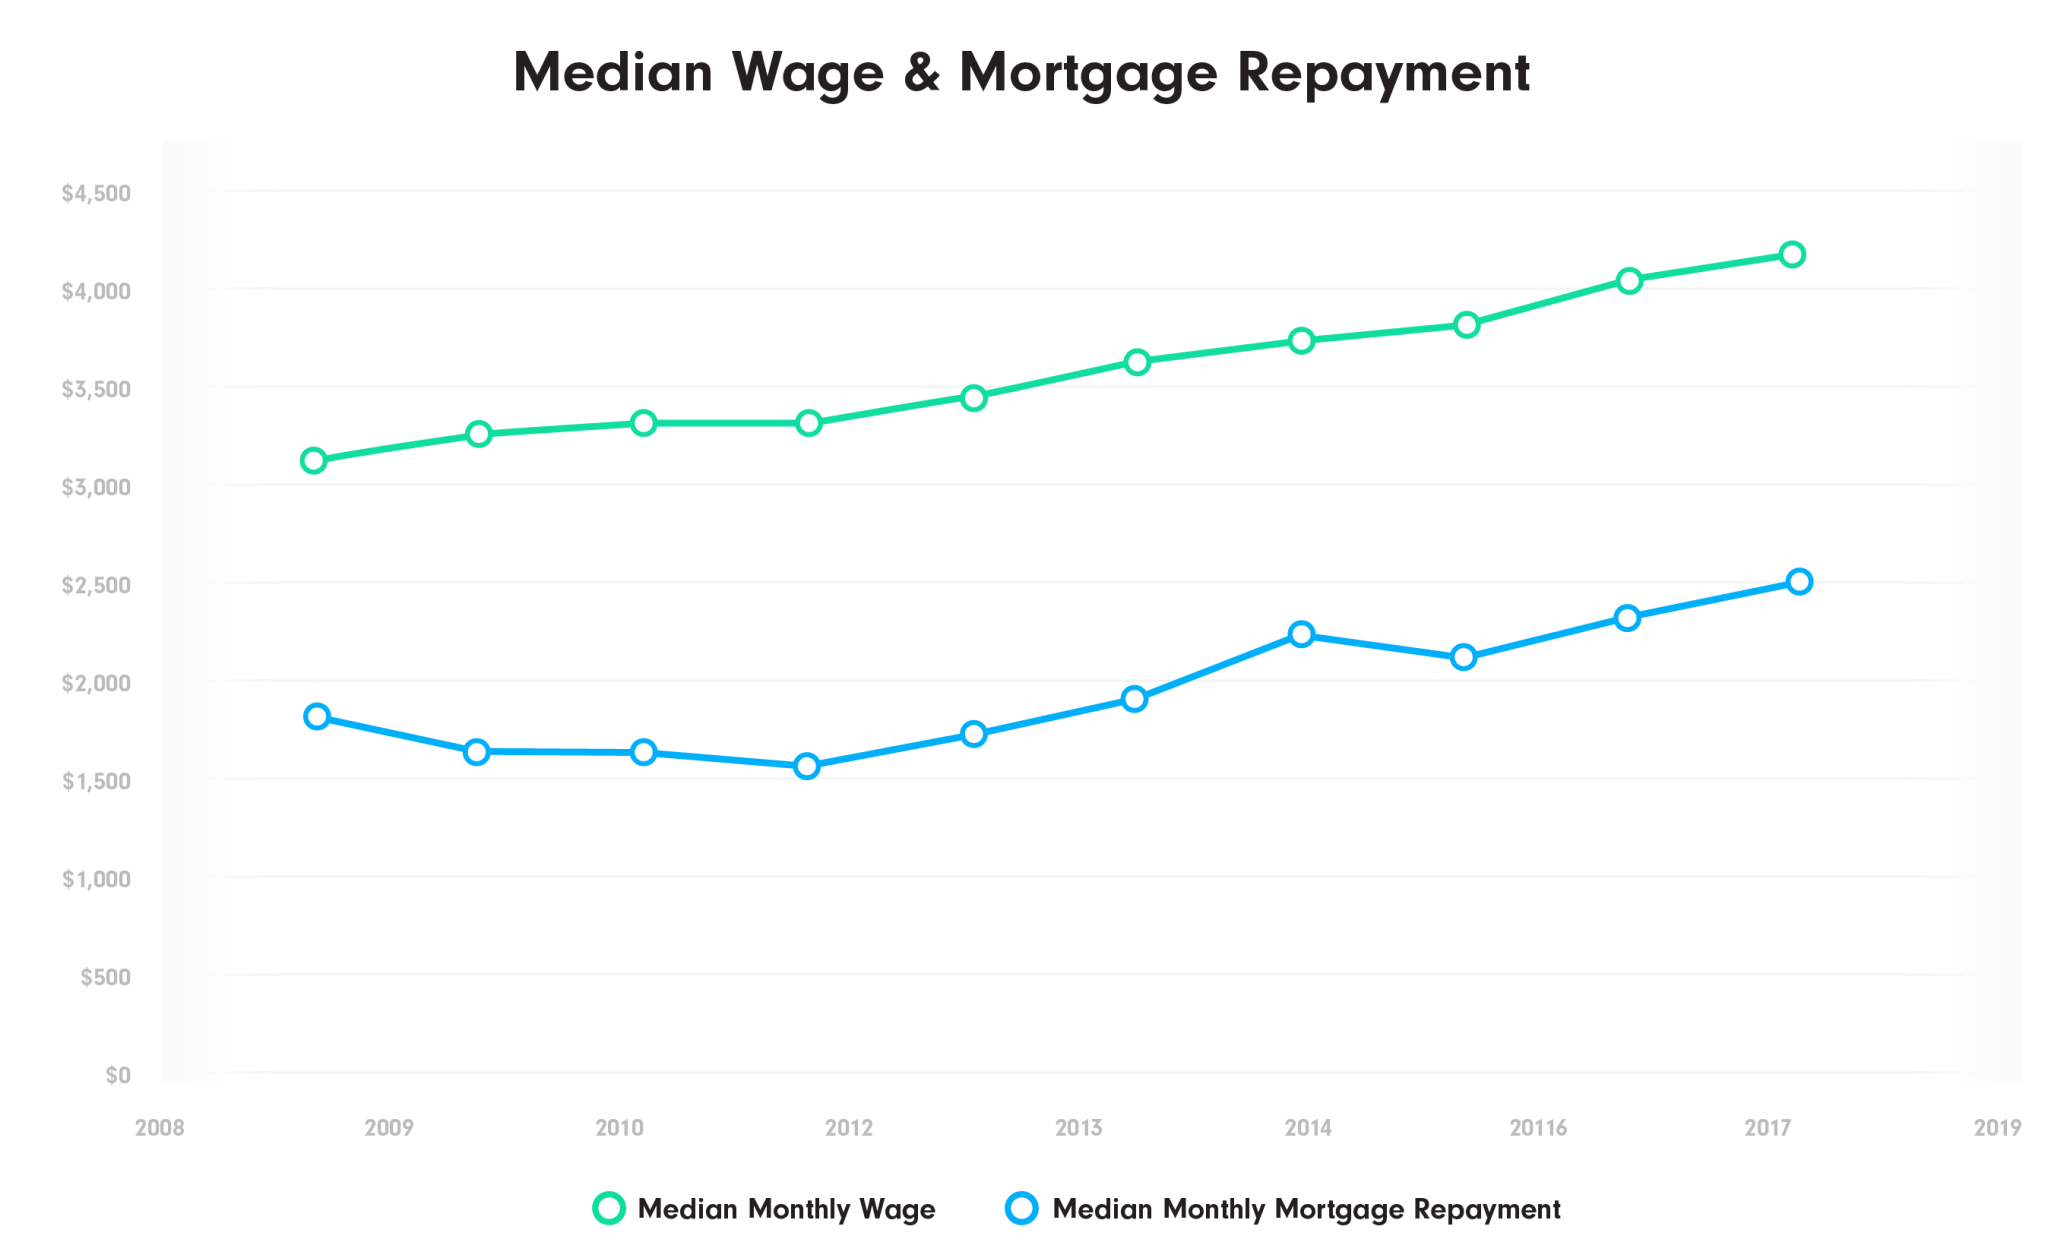 Median Monthly Wage & Mortgage Repayment Chart NZ